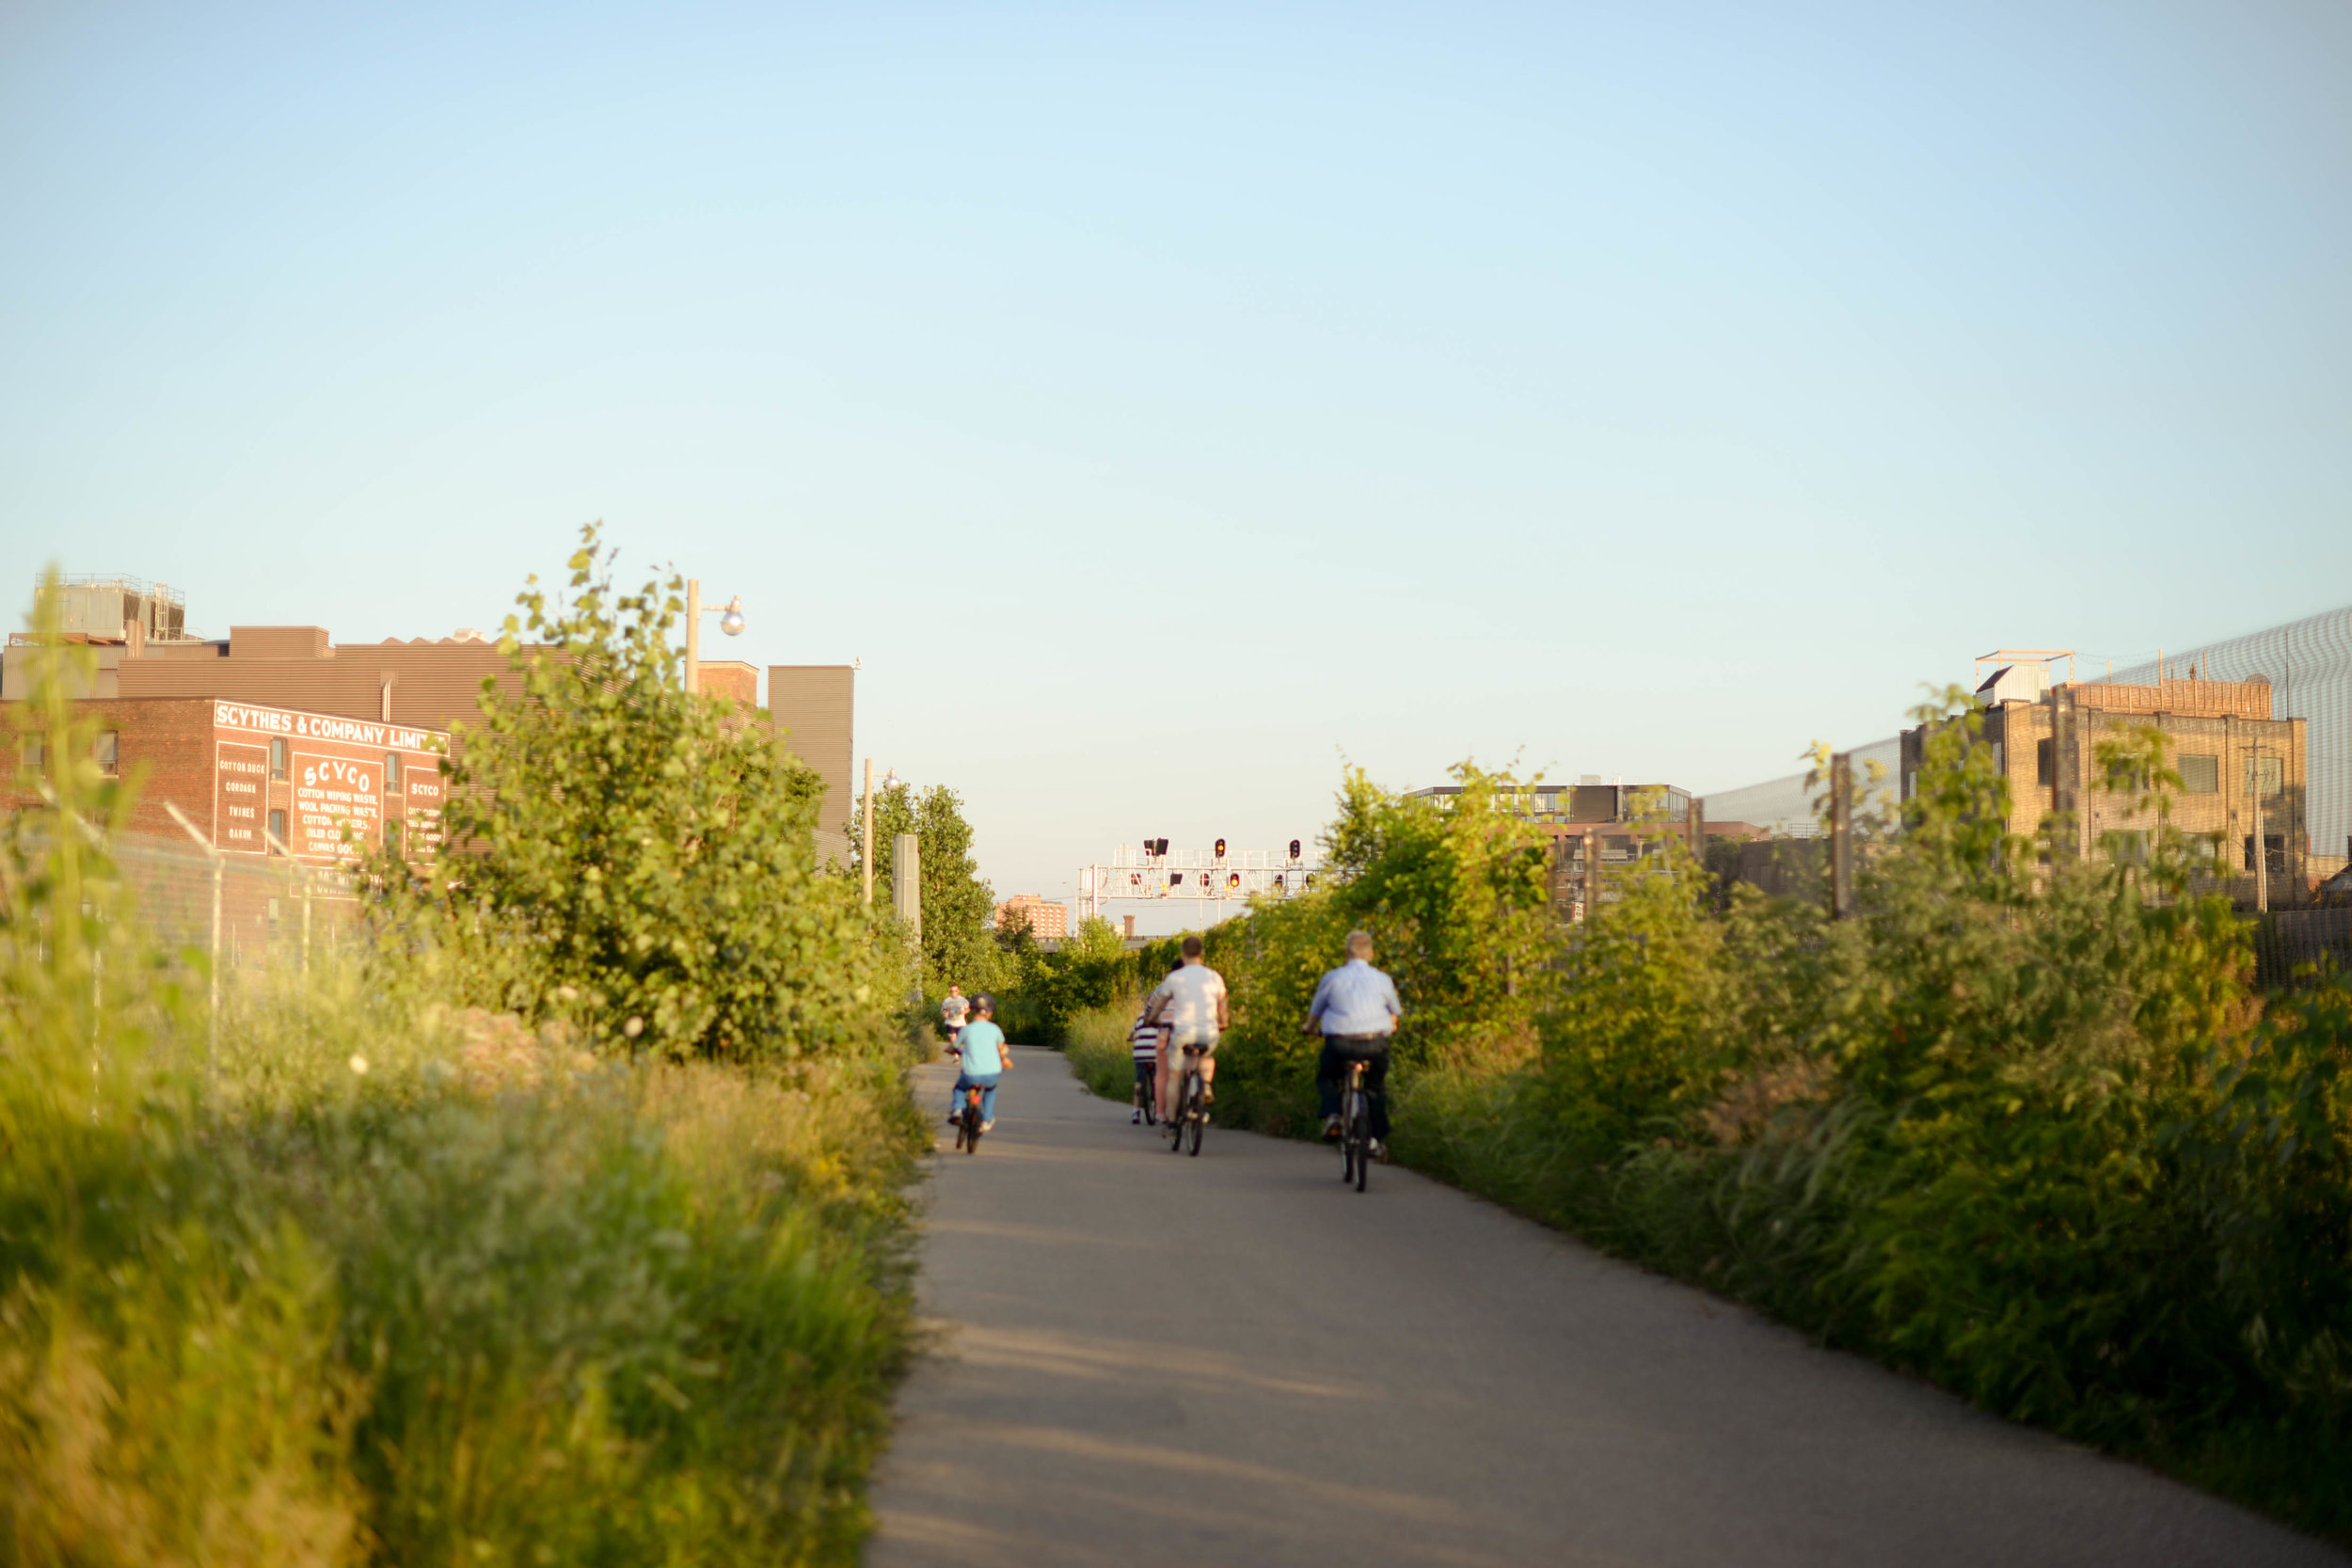 The Friends of the West Toronto Railpath is a volunteer group committed to expanding, protecting and improving the WTR, a 2 km multi-use trail that connects Toronto's West End. -